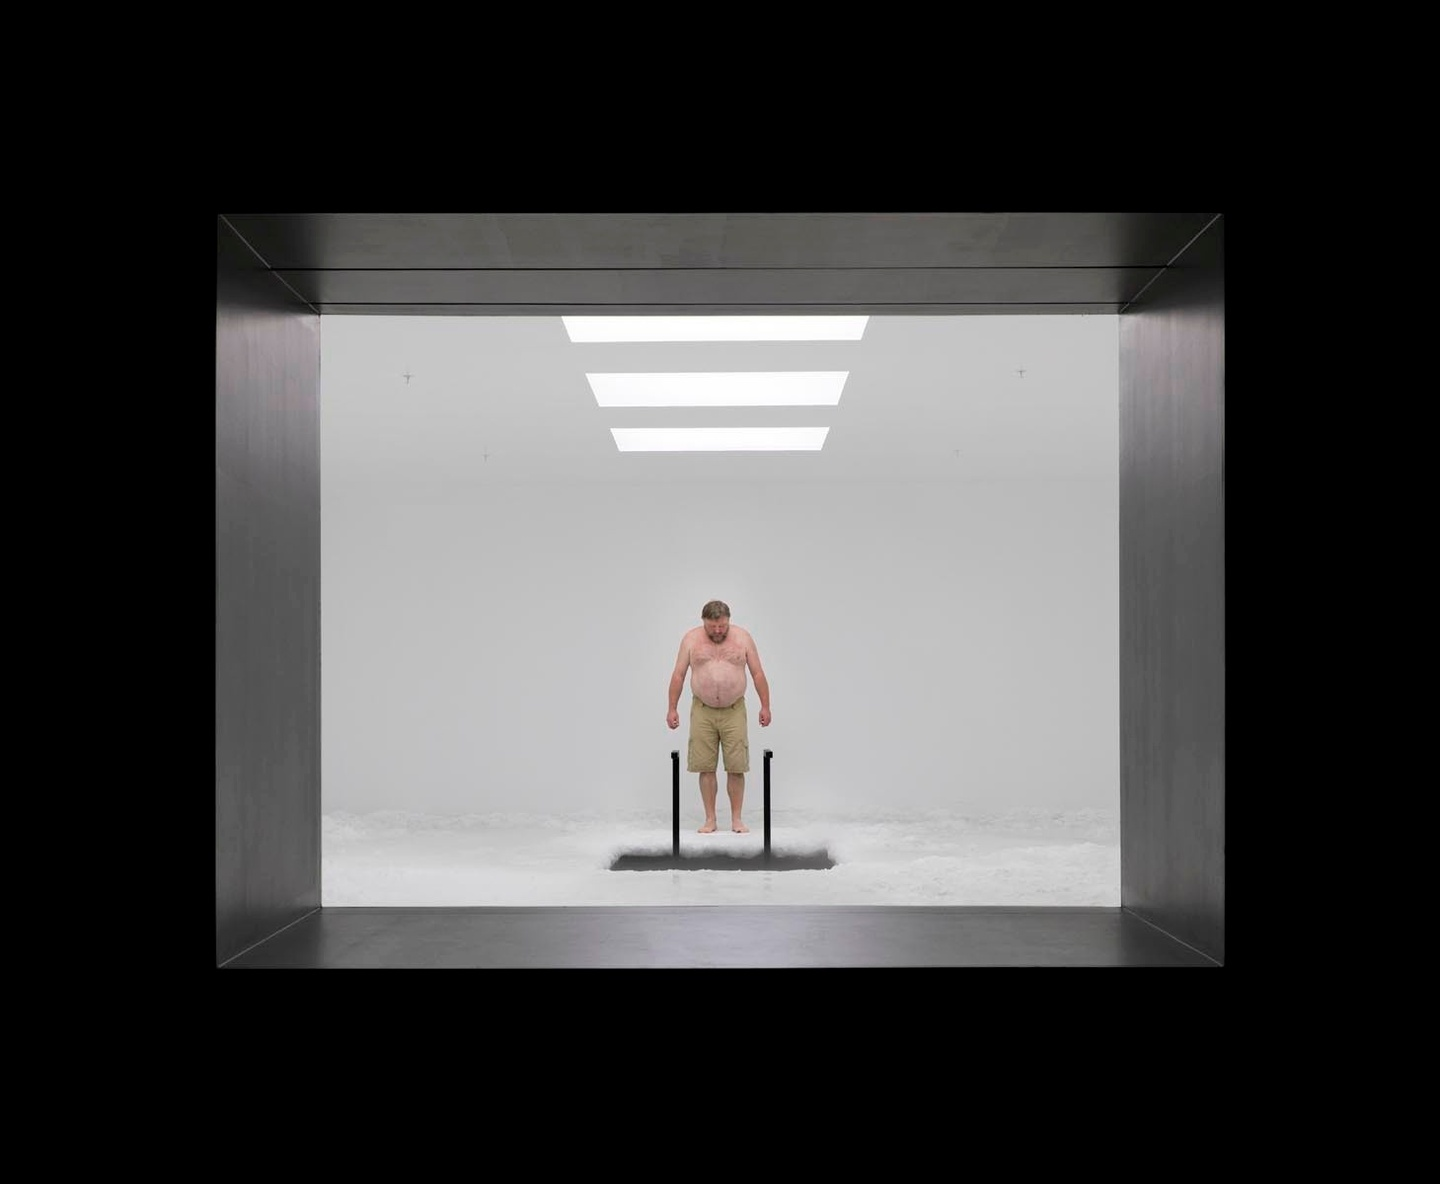 A black frame around a view into threshehold of a white room with three rectangular, overhead lights. A shirtless individual is looking down at a rectangular opening in the floor, with what might be a black ladder leading into it.